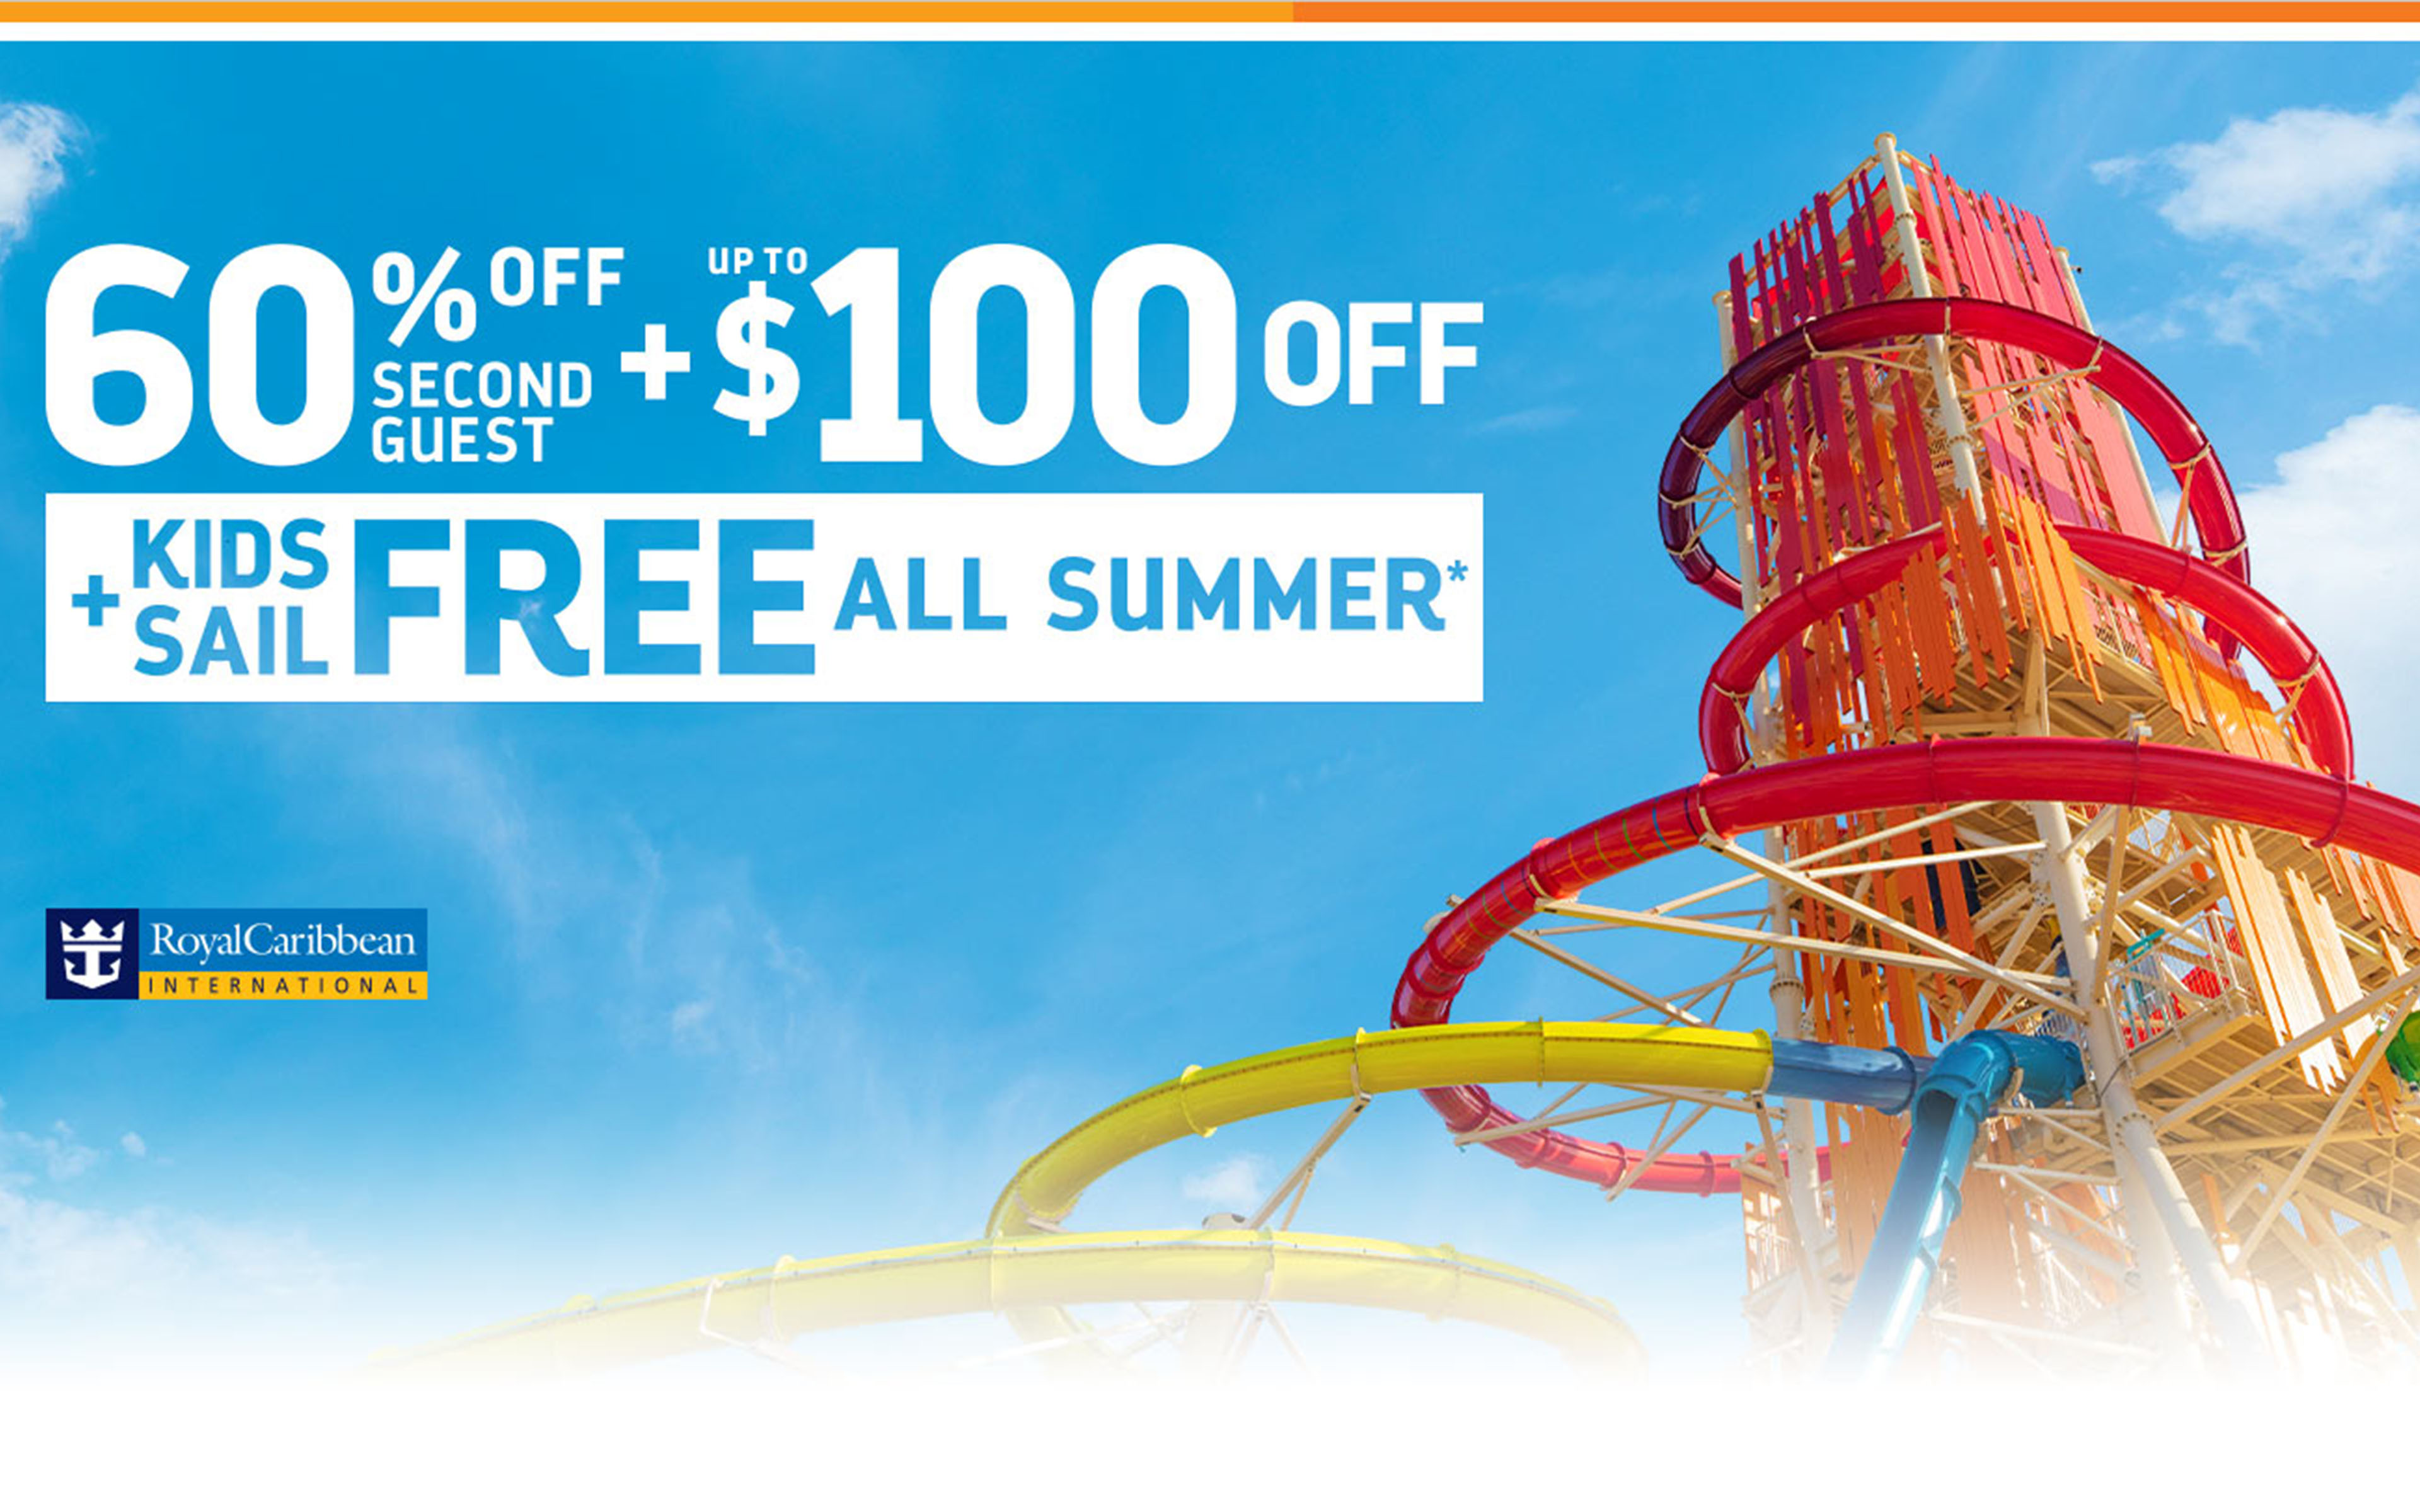 Royal Caribbean - 60% OFF Second Guest + Kids Sail Free + Up to $100 OFF